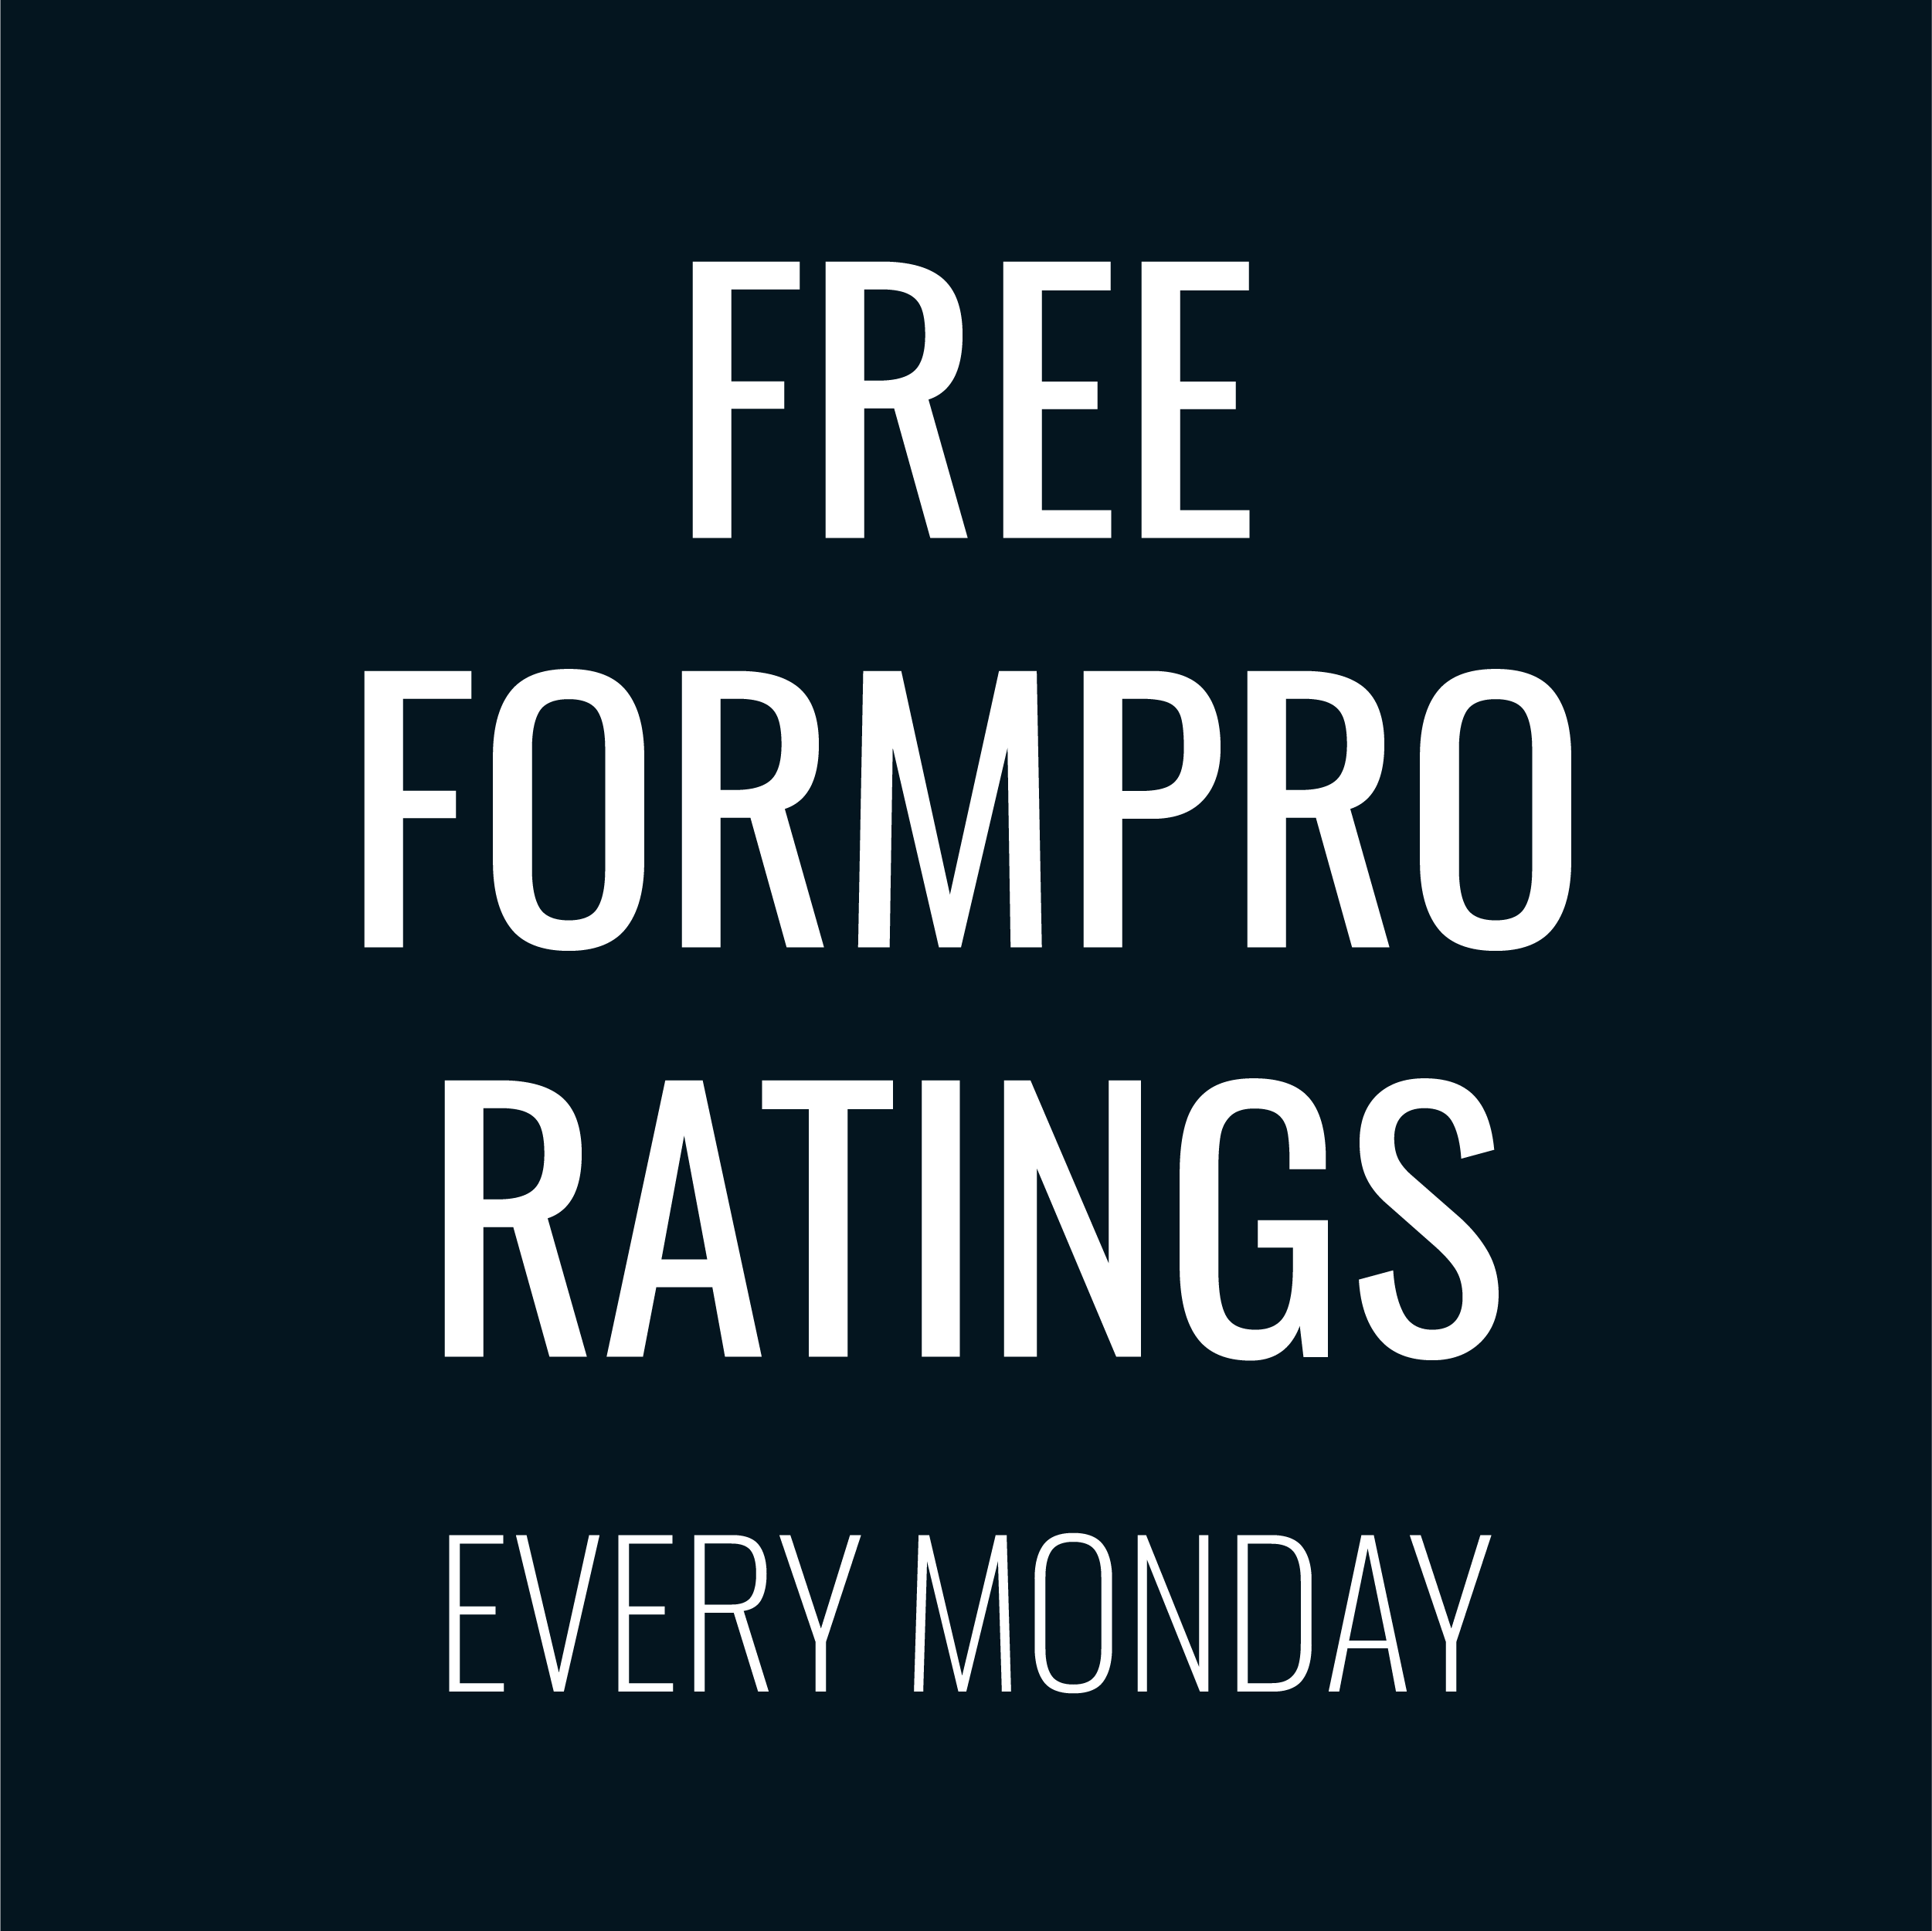 Free Greyhound Ratings Monday 15 April